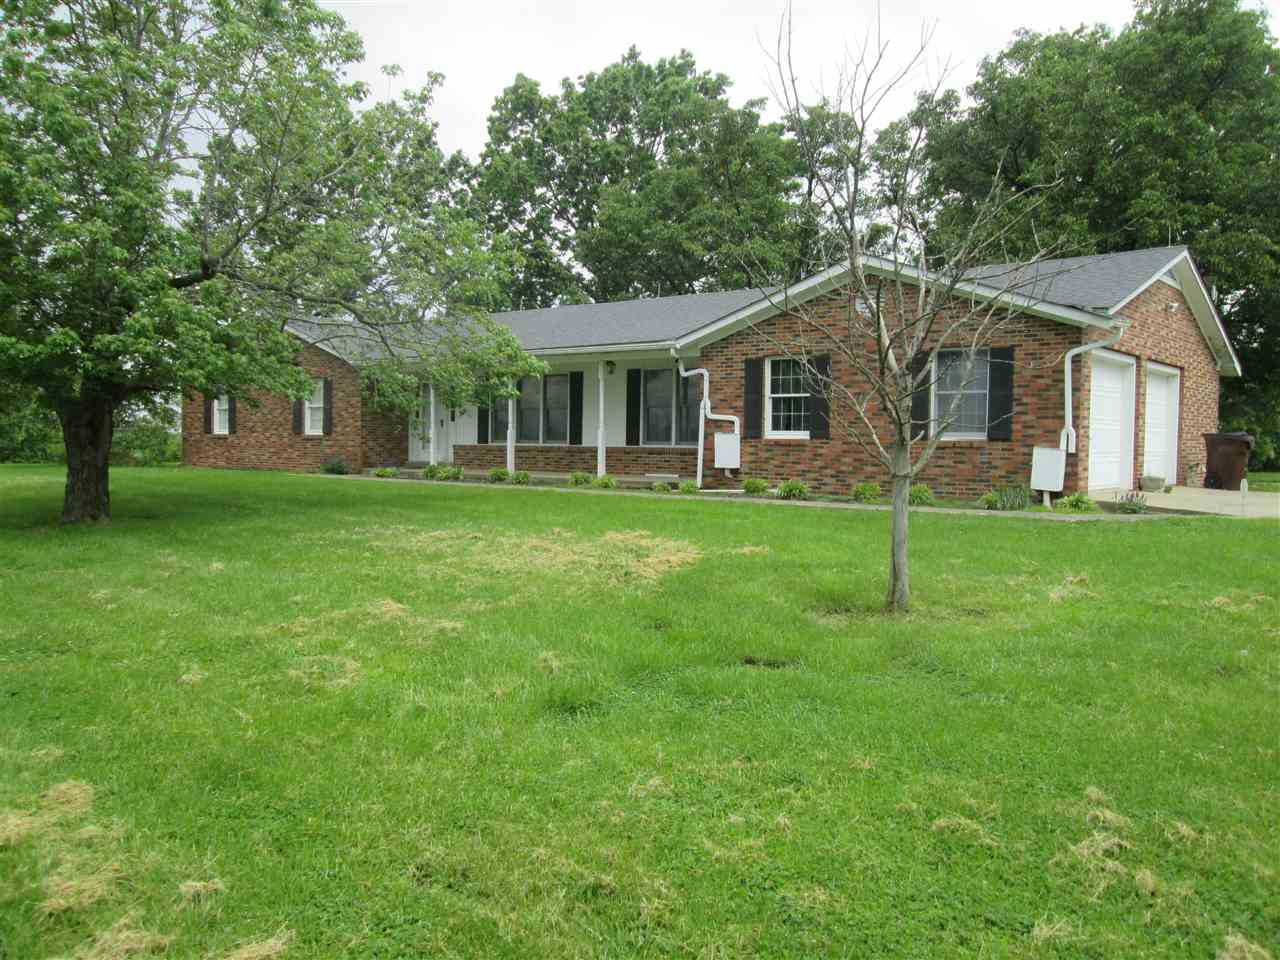 Photo 2 for 87 Jacks Branch Rd Berry, KY 41031